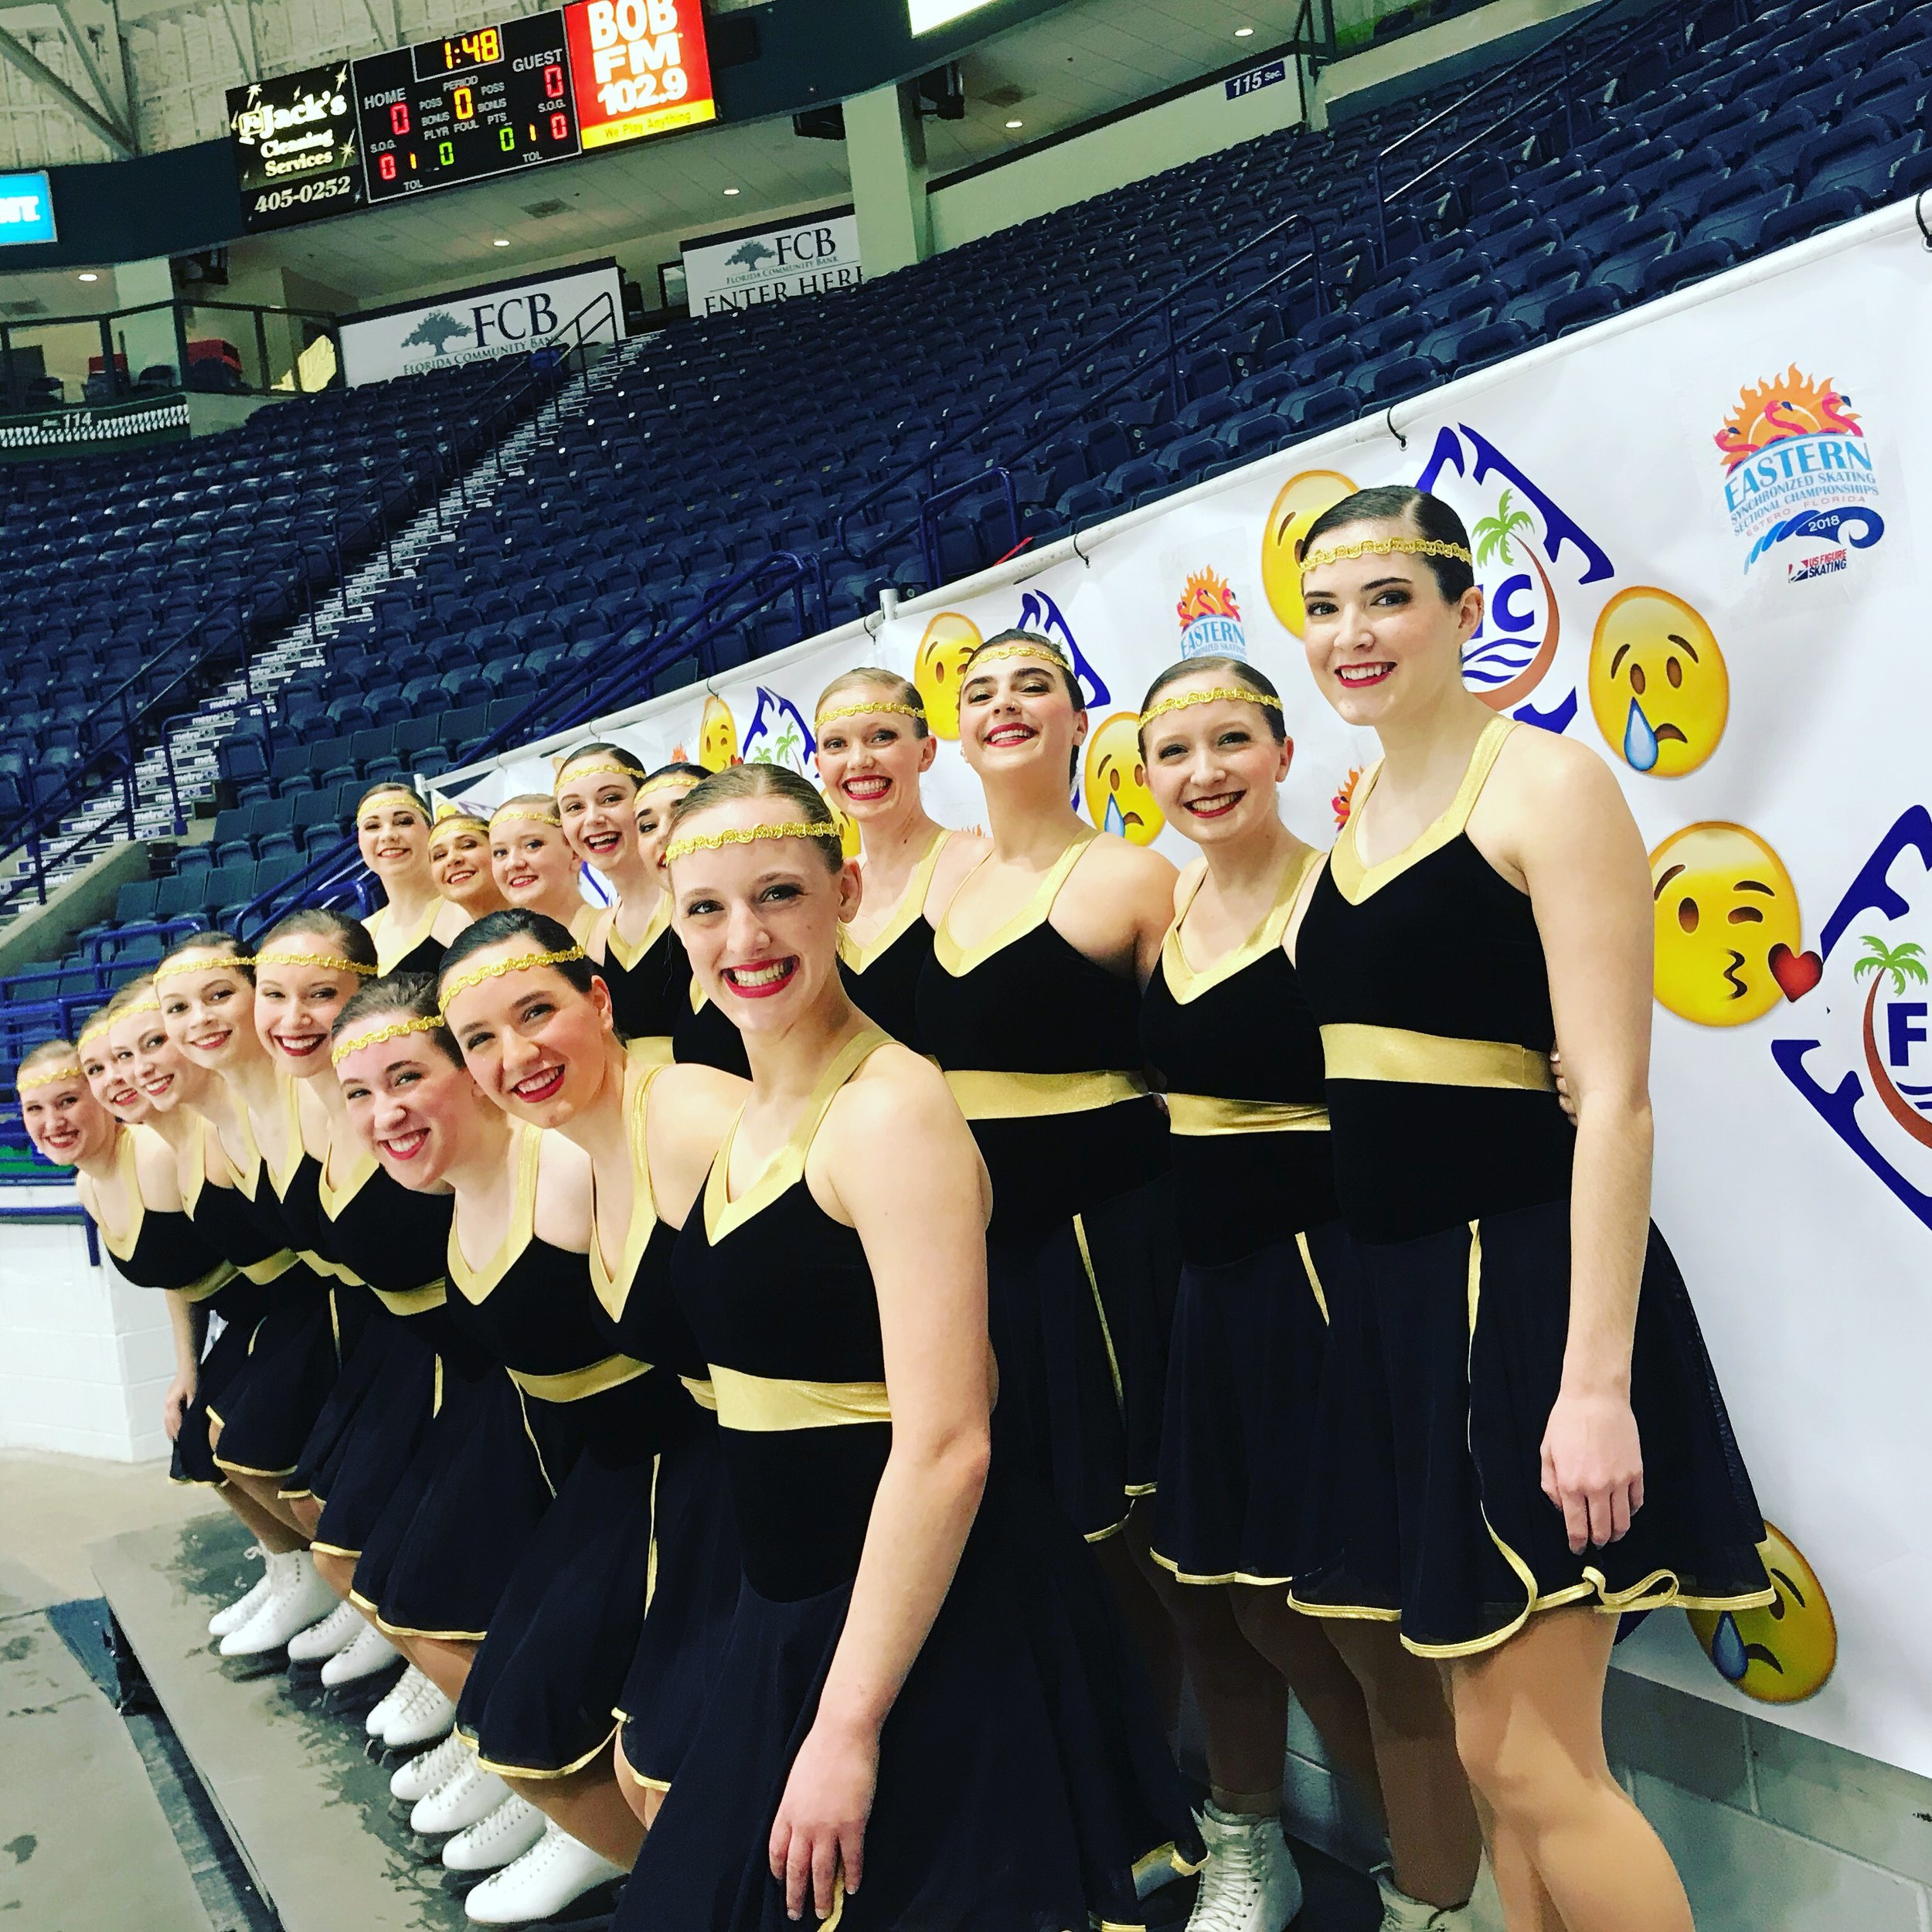 The University of Vermont Synchronized Skating Team traveled to Estero, Florida for the 2018 Eastern Sectional Synchronized Skating Championships in January and skated to a strong 6th place finish in the Open Collegiate level! The team returned from the sun energized to train for next season. Join us as we close out the 2017-2018 season with a show in Middlebury on February 25th and at UVM on April 15th.